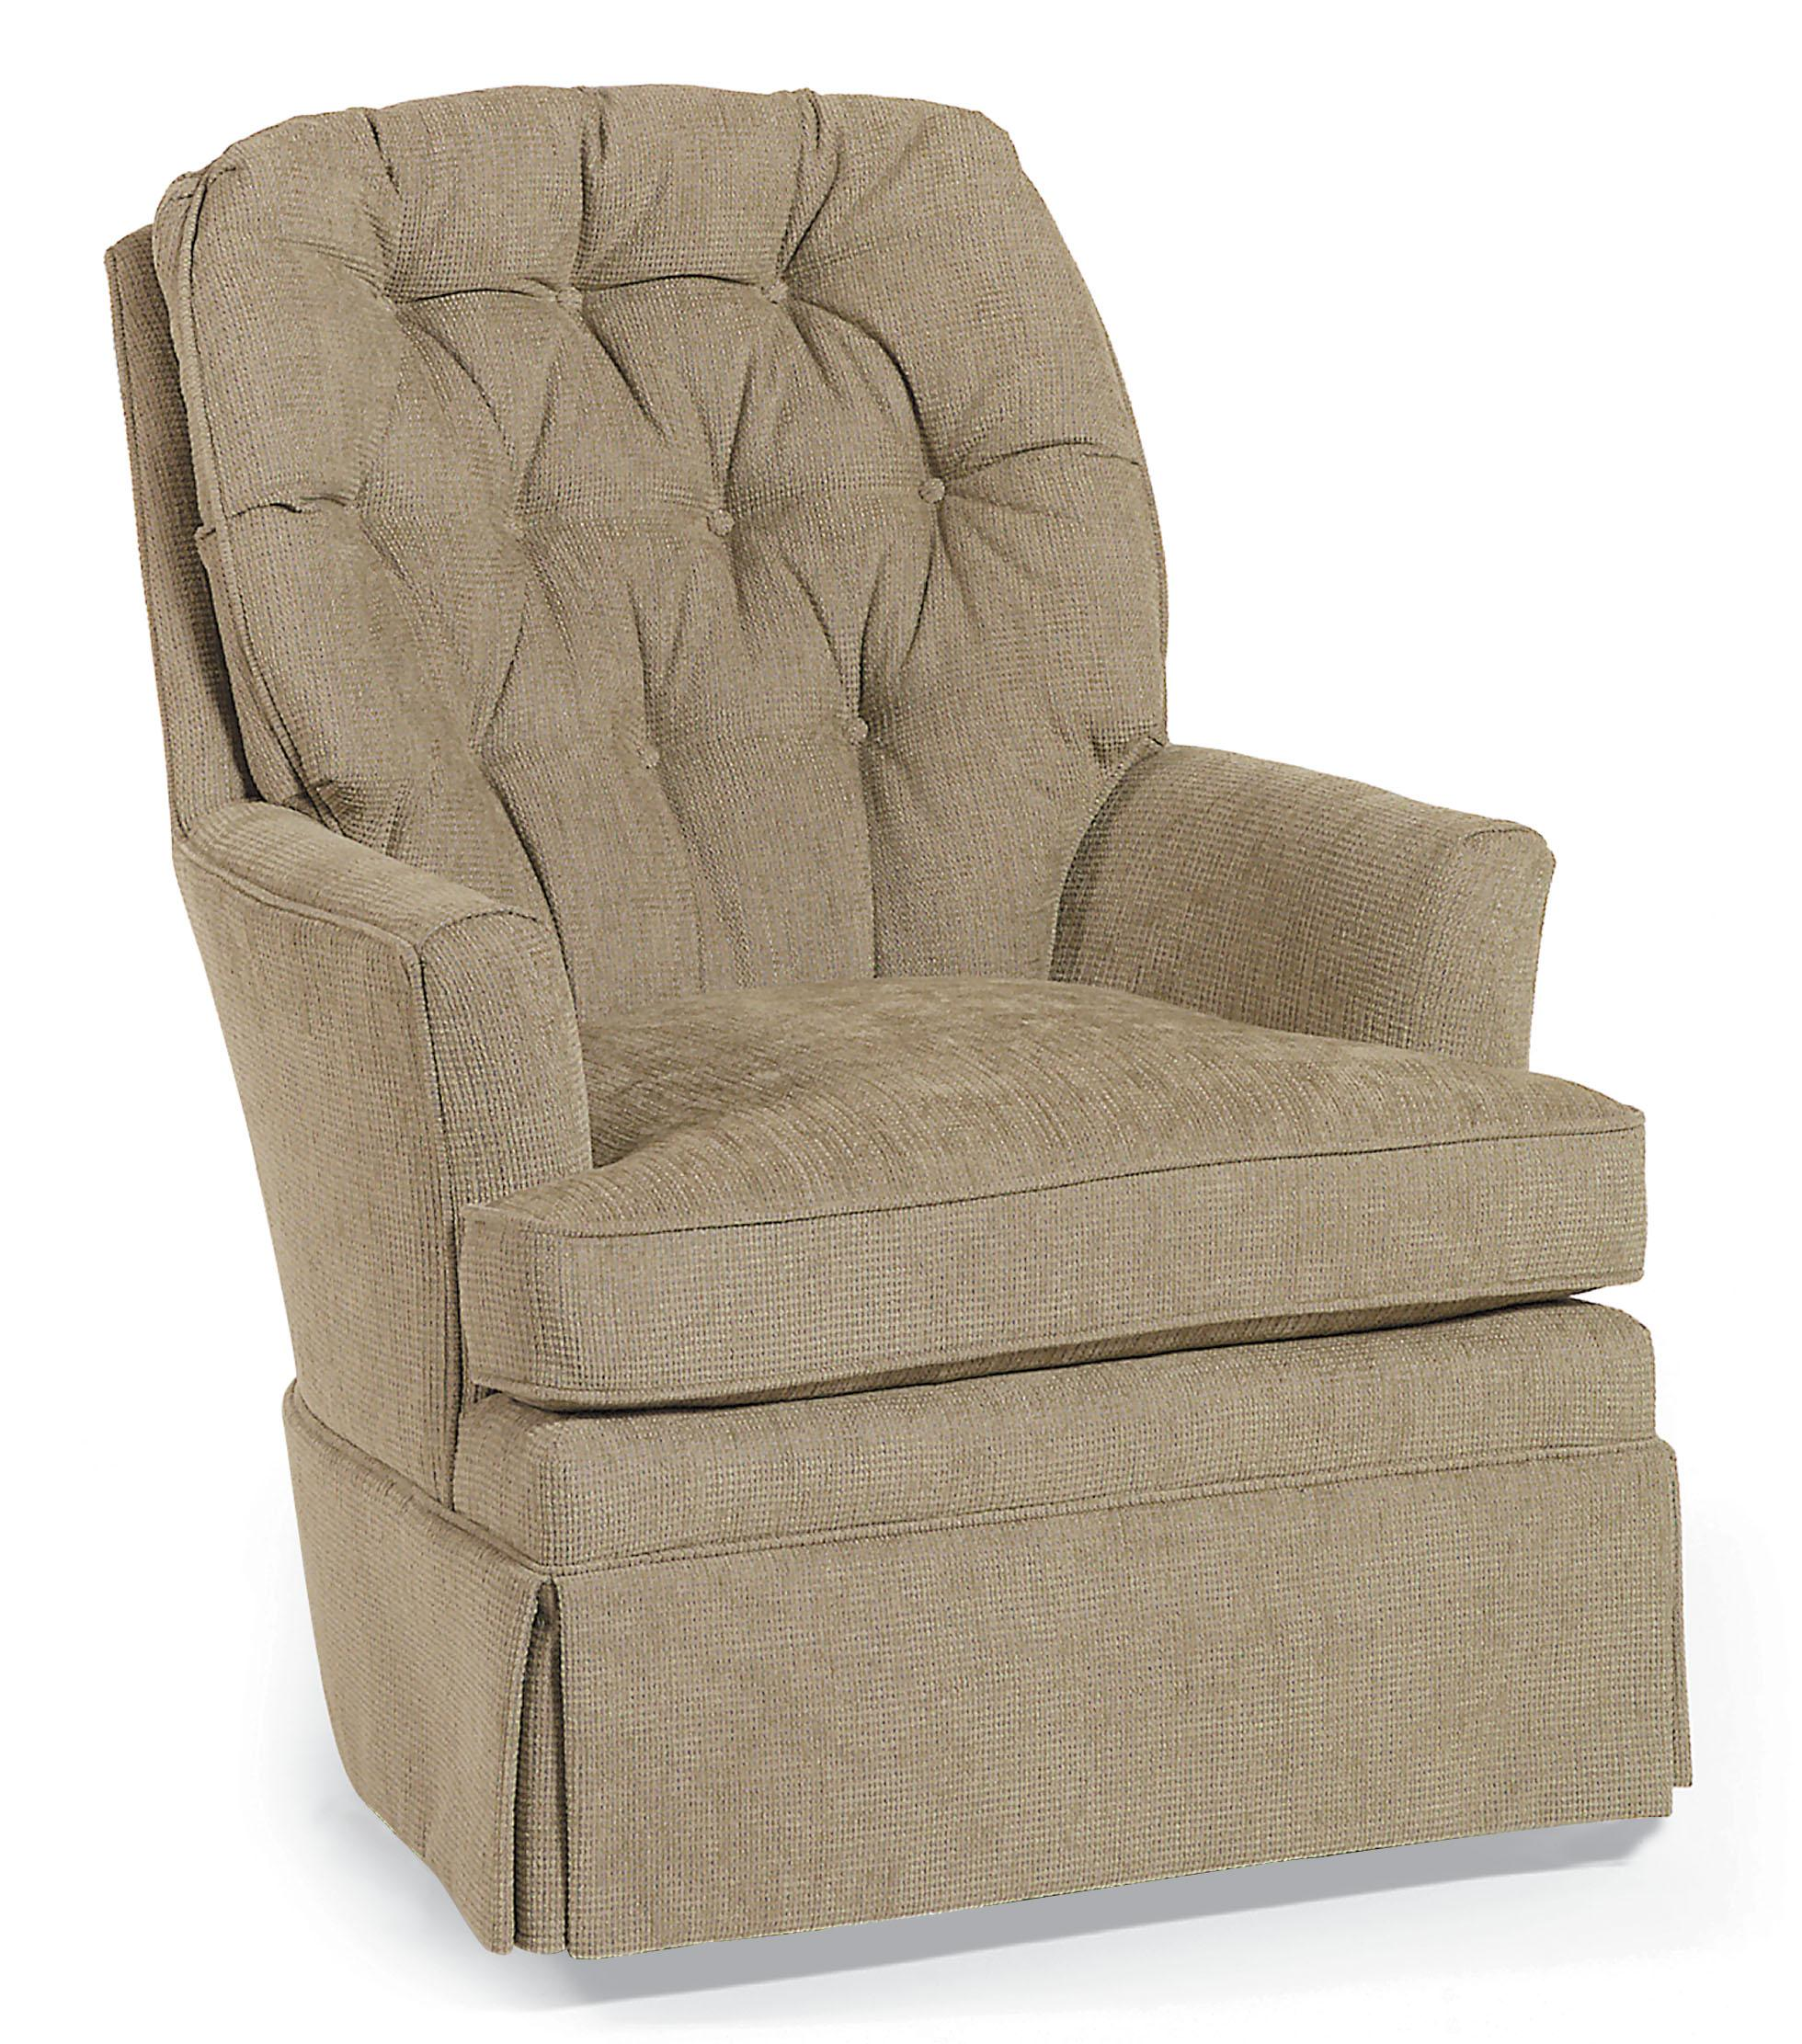 Swivel Rocking Chairs Living Room Chairs Swivel Rocker